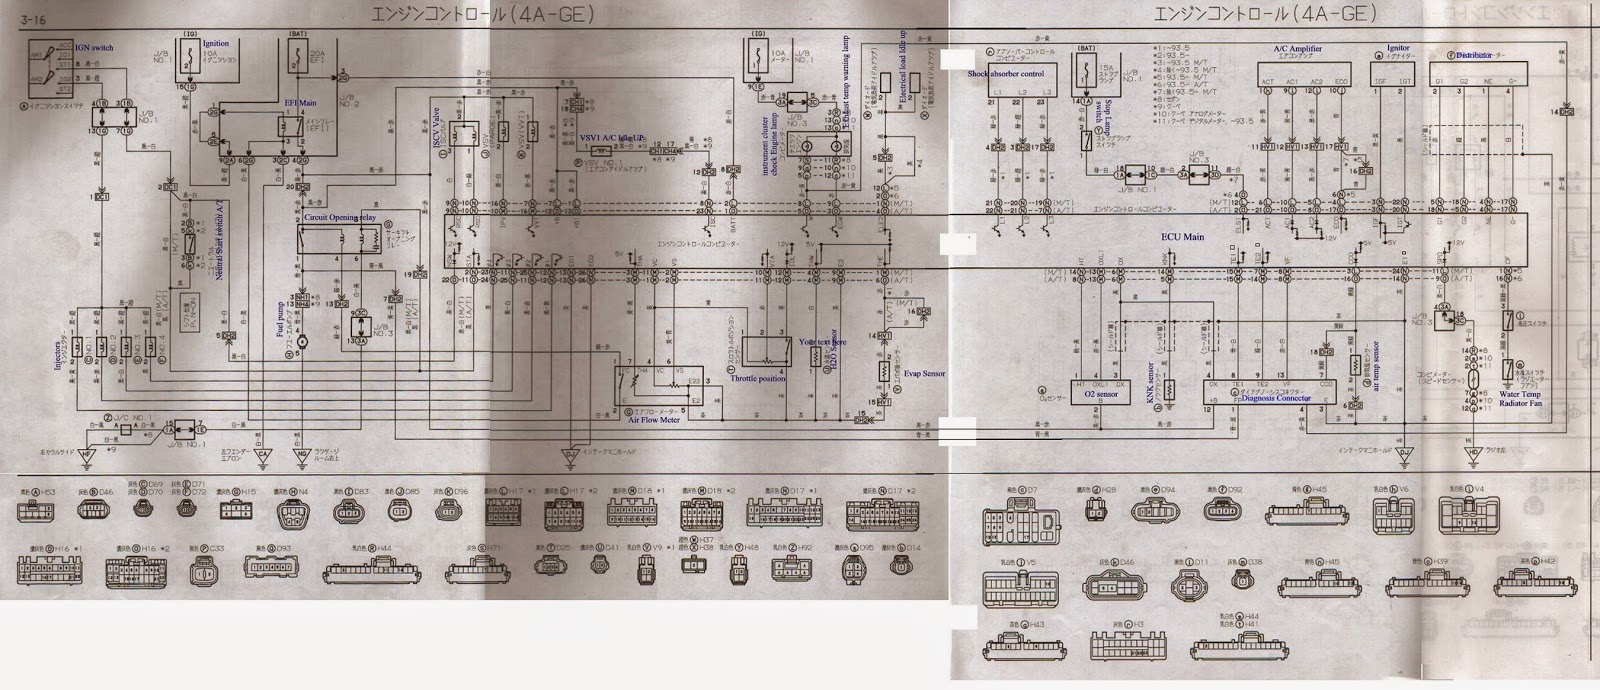 4age 20v Ecu Wiring Diagram Club4ag Forum Topics Electric Fan On Fuse Board Dolgularcomrhdolgular